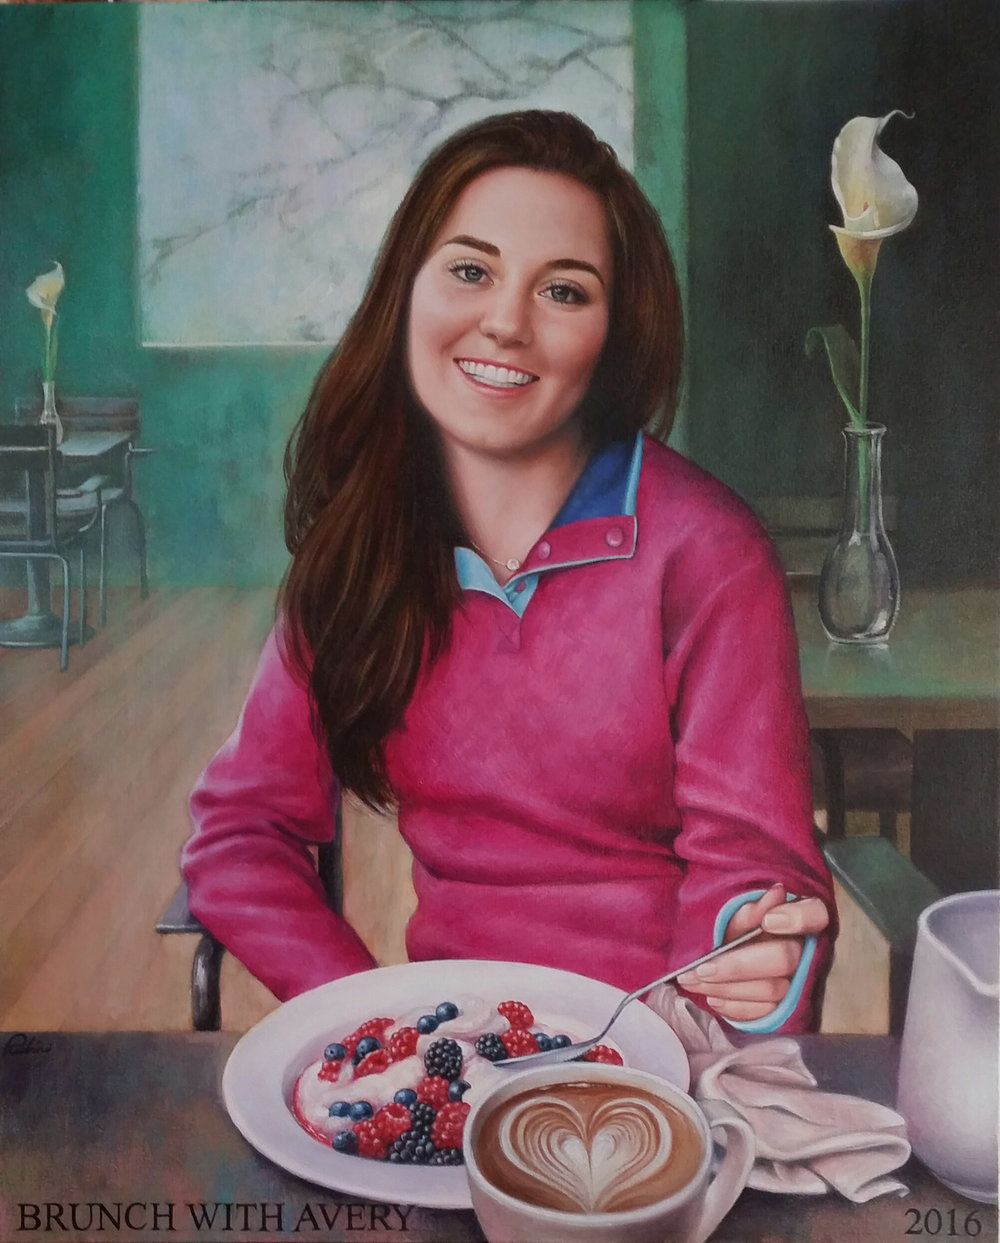 """BRUNCH WITH AVERY, 2016"", 26 x 32, Oil"